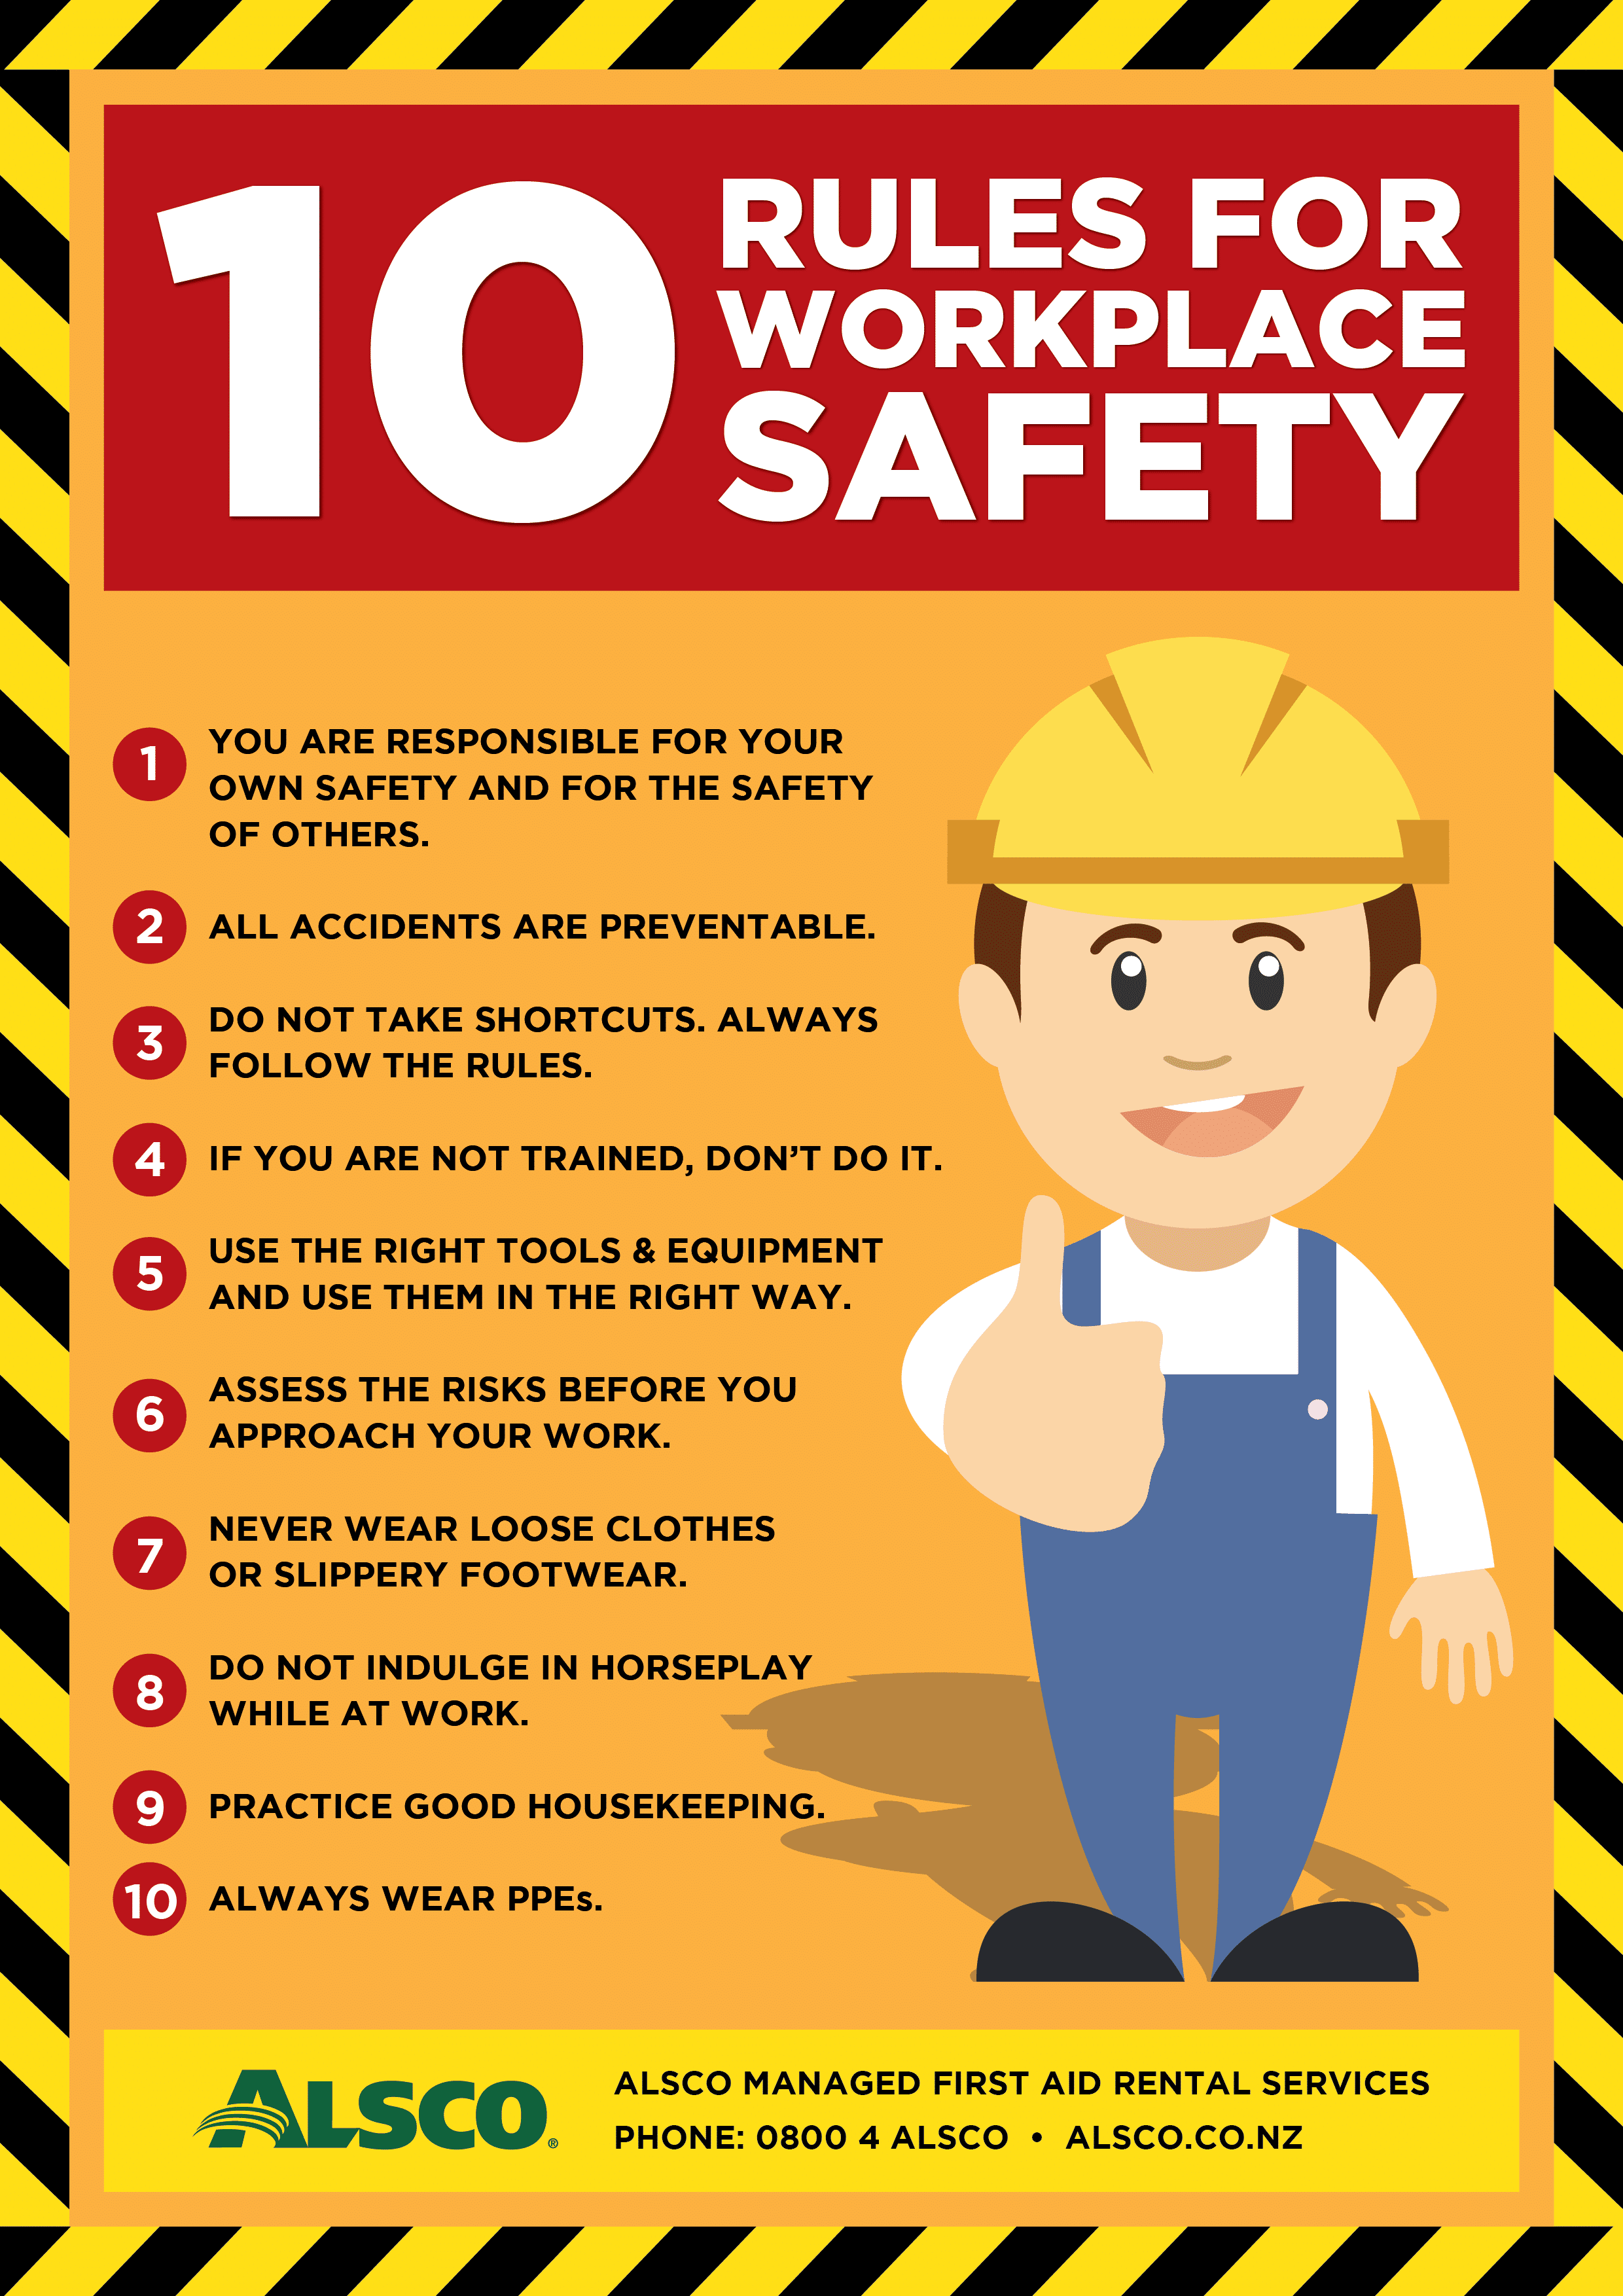 10 Rules For Workplace Safety - Workplace Safety PNG HD